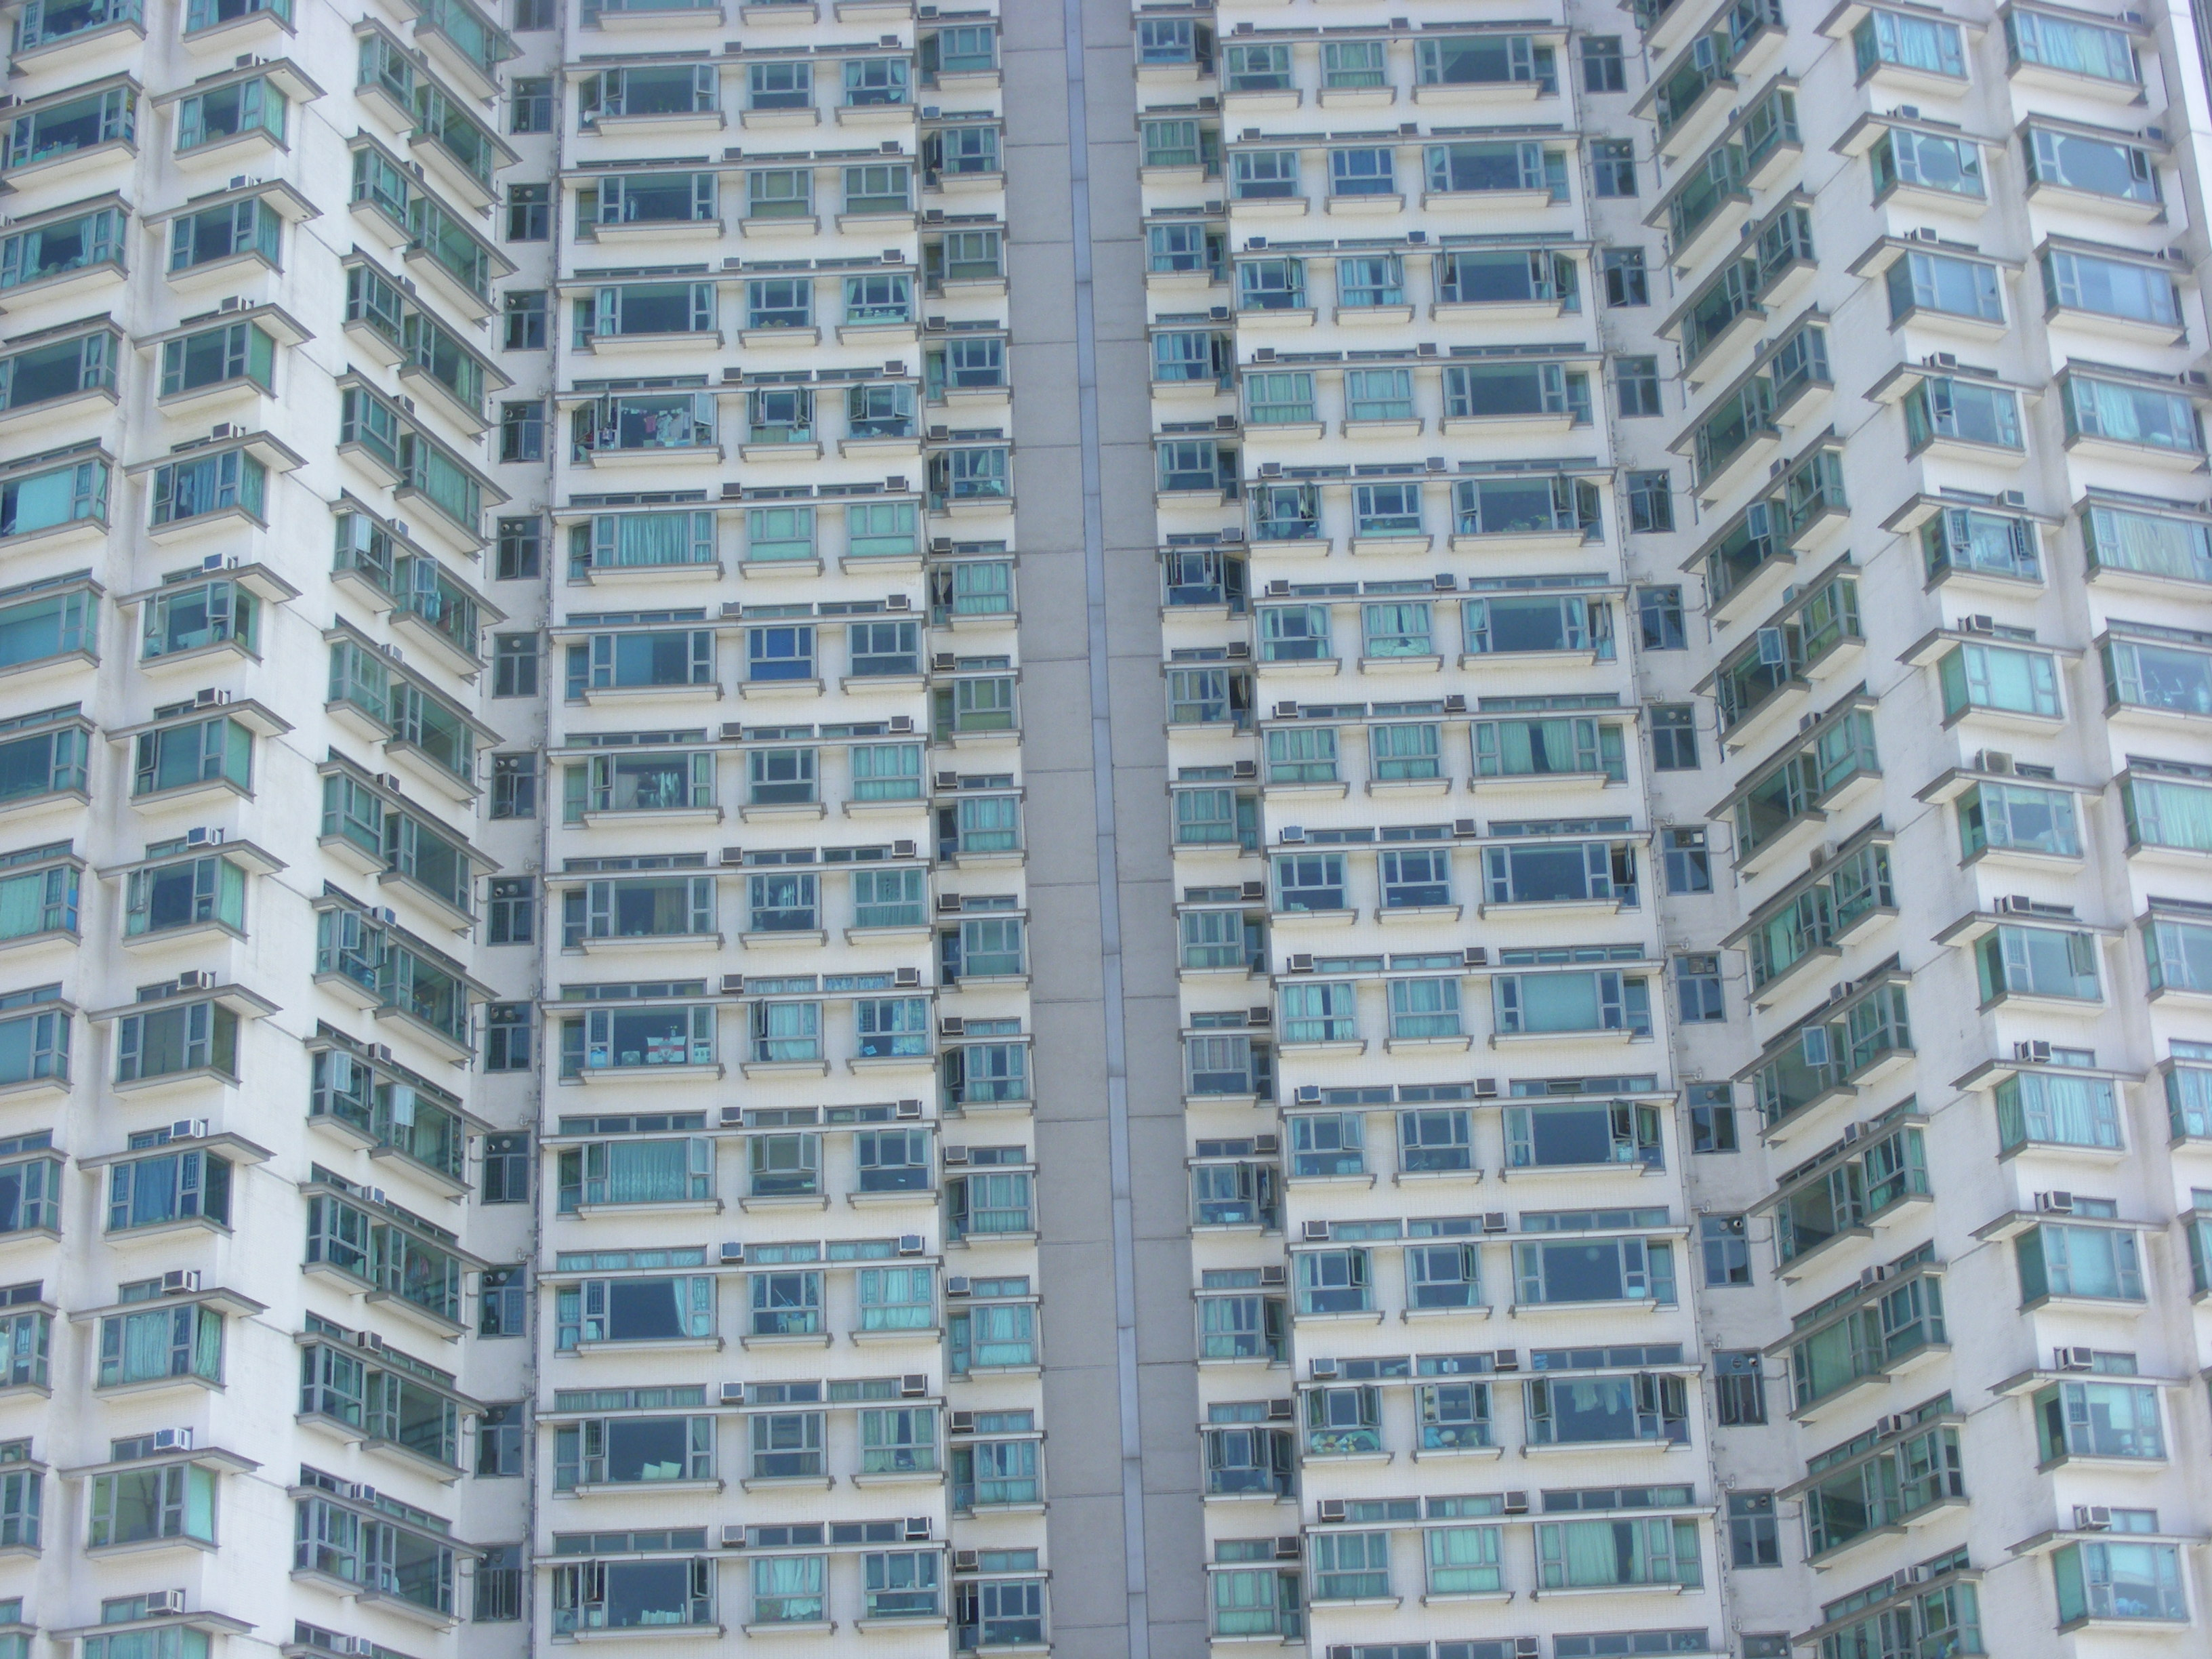 hong kong property law Introduction home-buyers in hong kong have for the longest time been short changed in the actual living space of apartments they bought, as common areas of housing development here until recently have been included in the calculation of the size of apartments for sale.